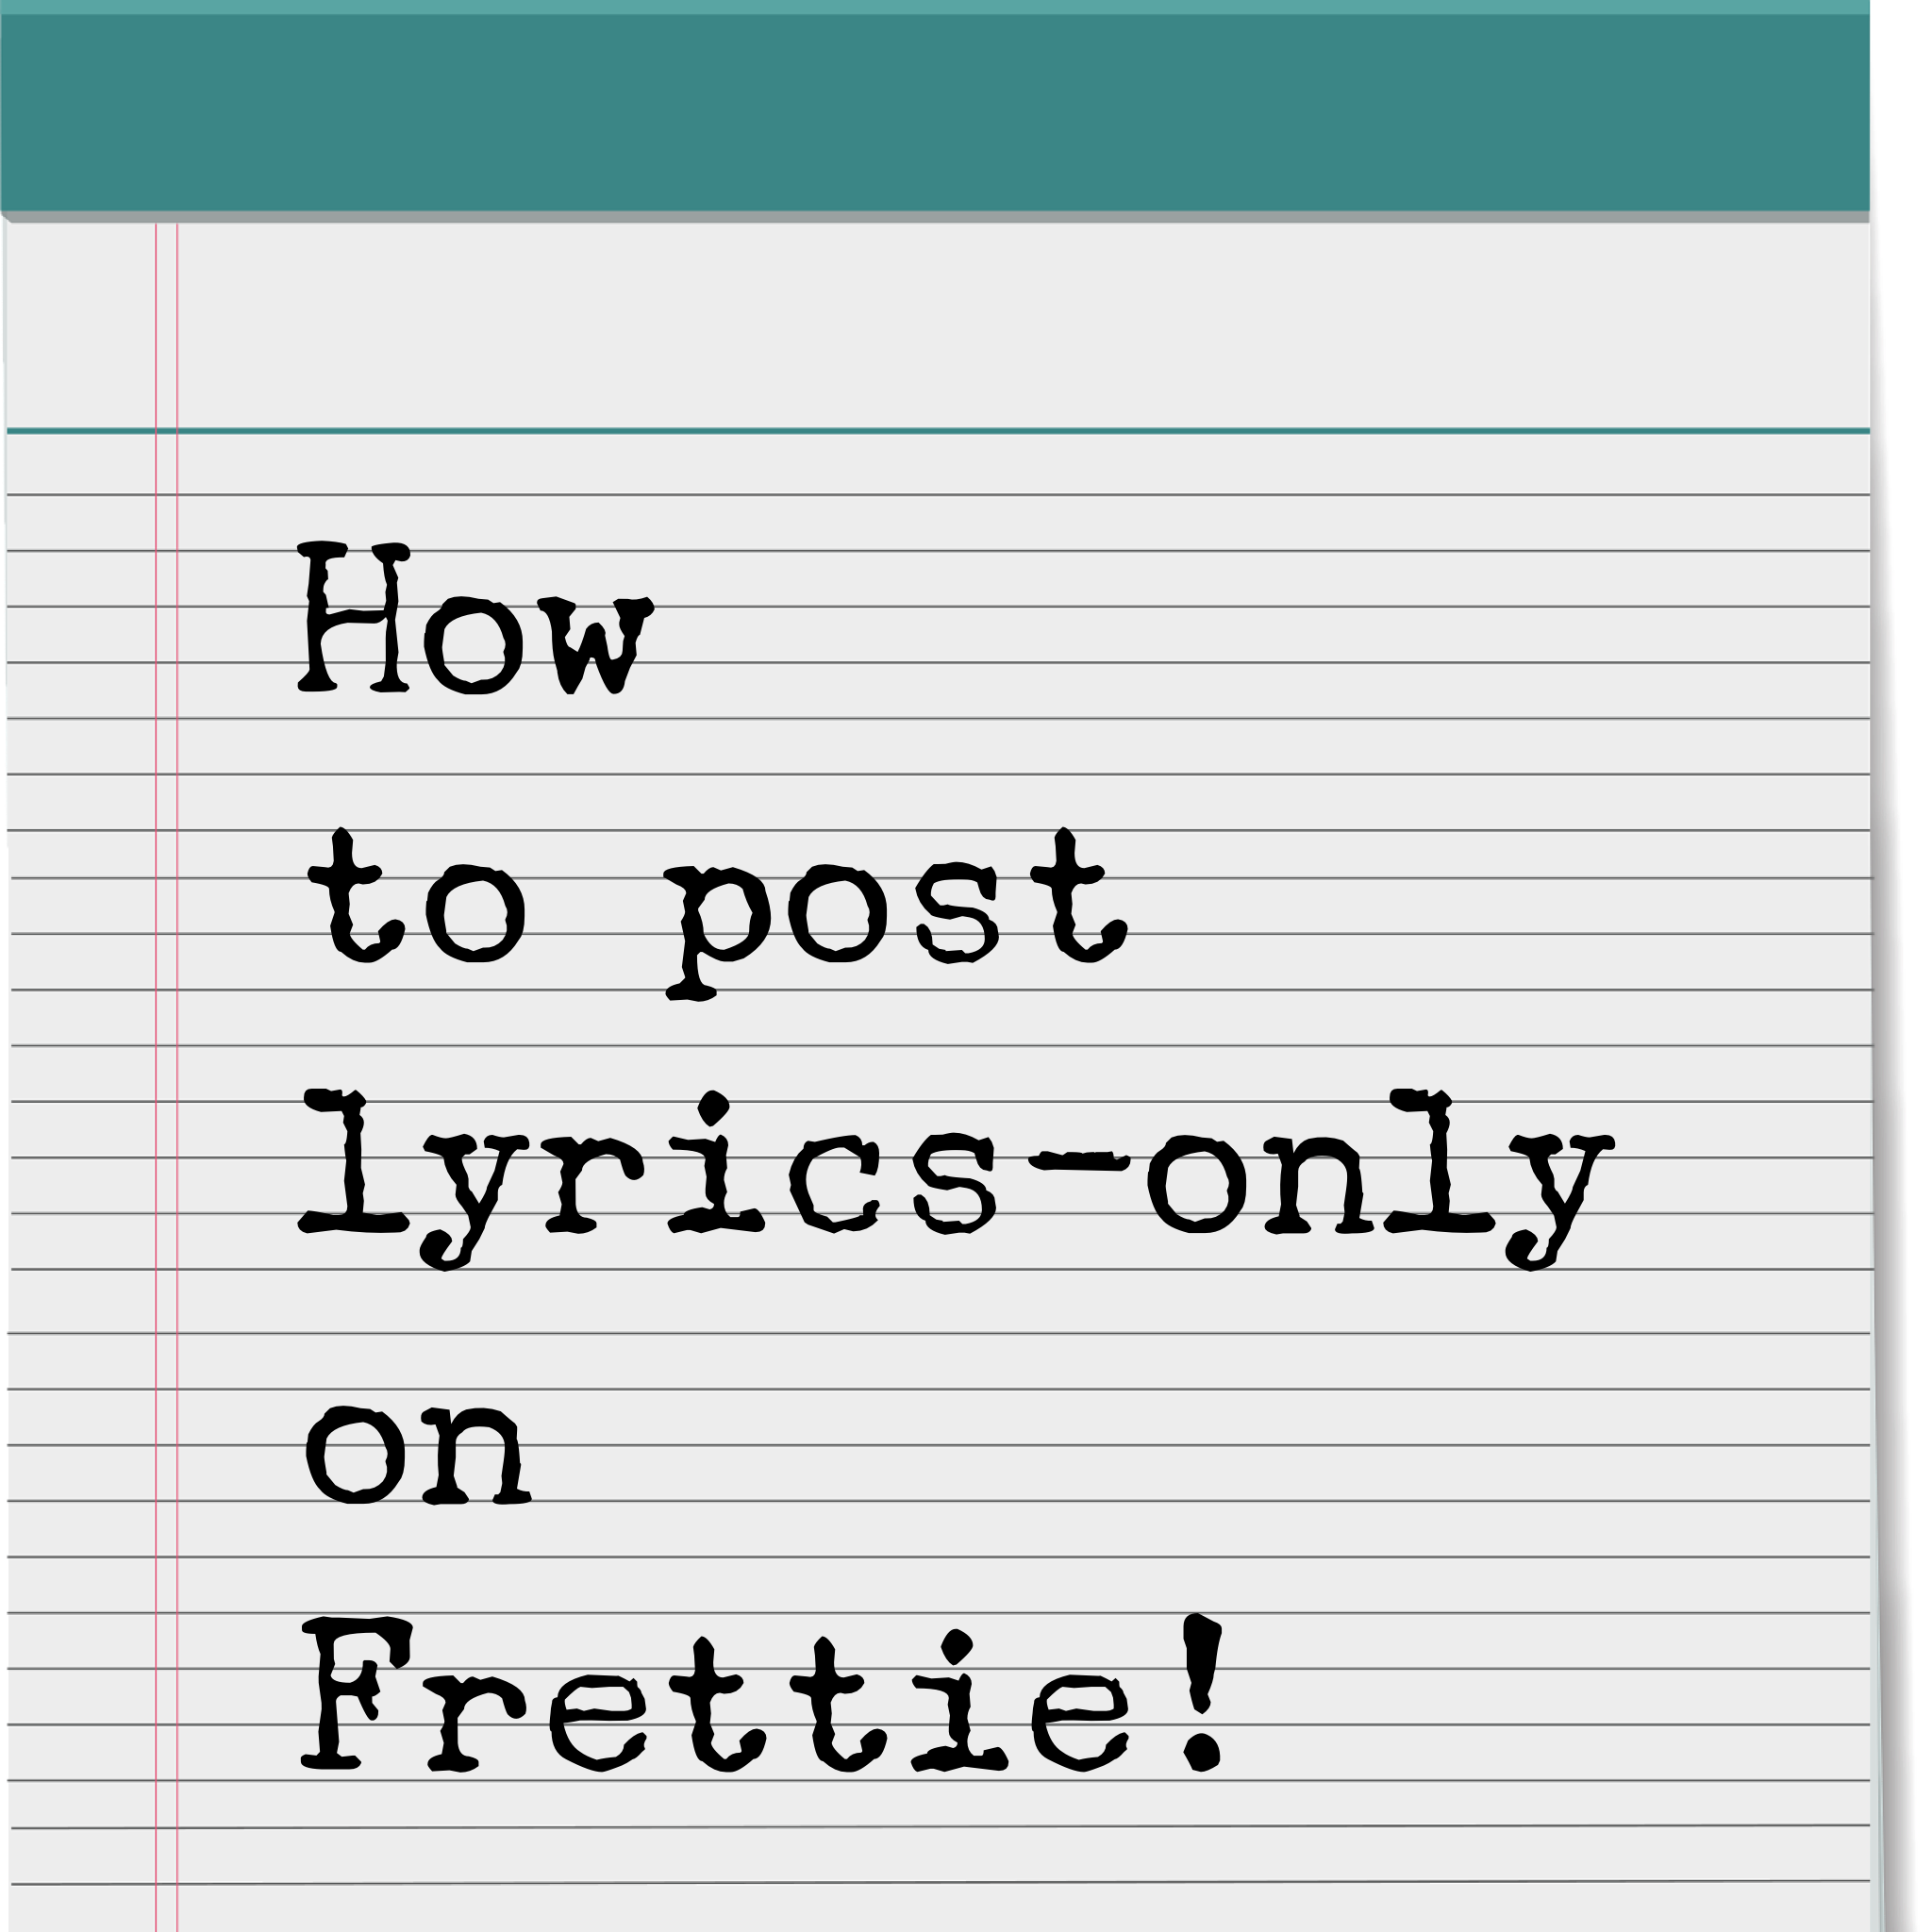 How to post lyrics-only for review!